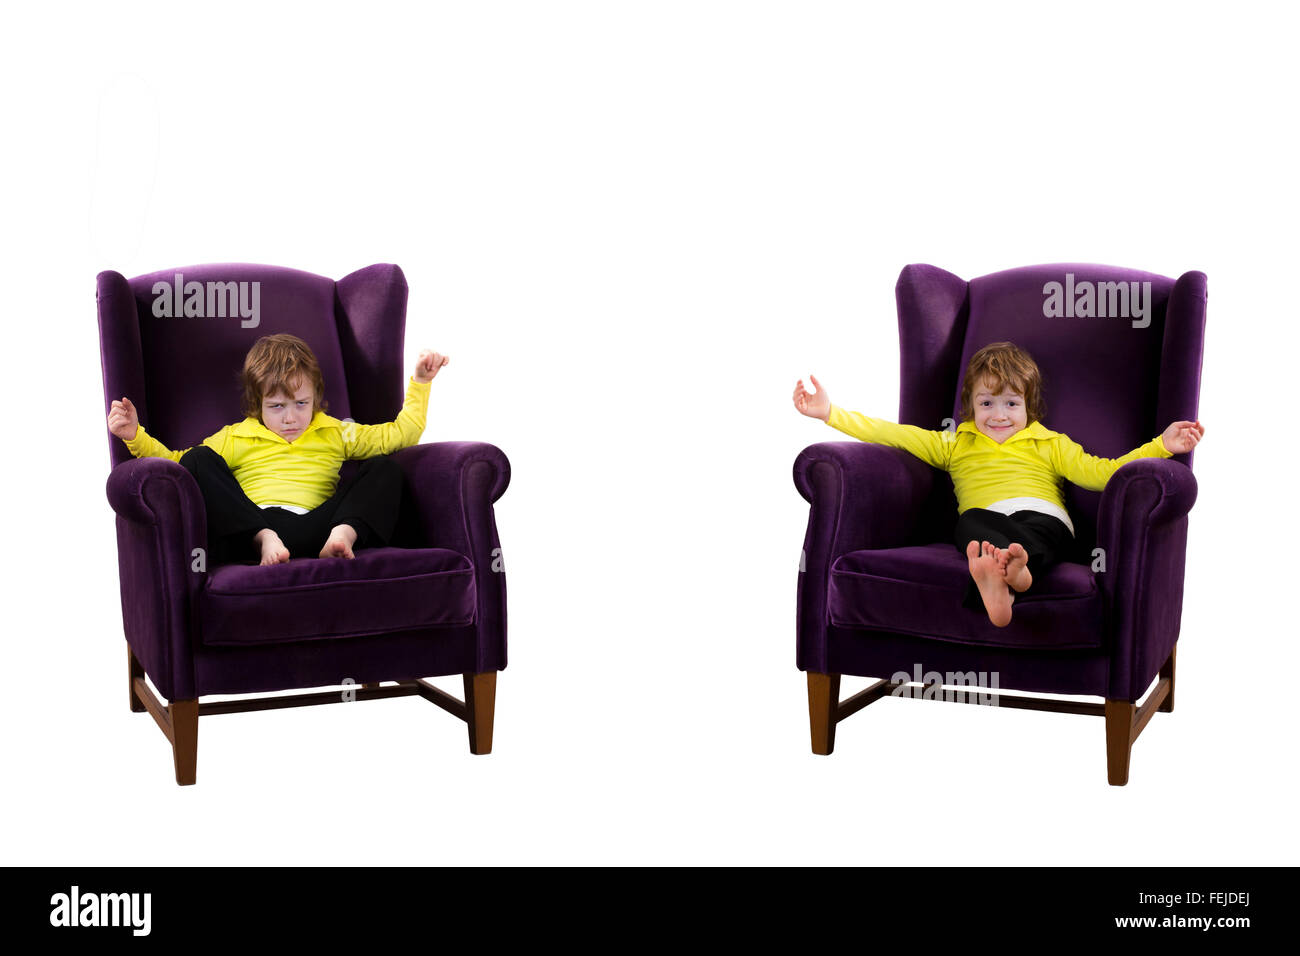 happy, angry red hair boy sitting on the two purple armchairs - Stock Image